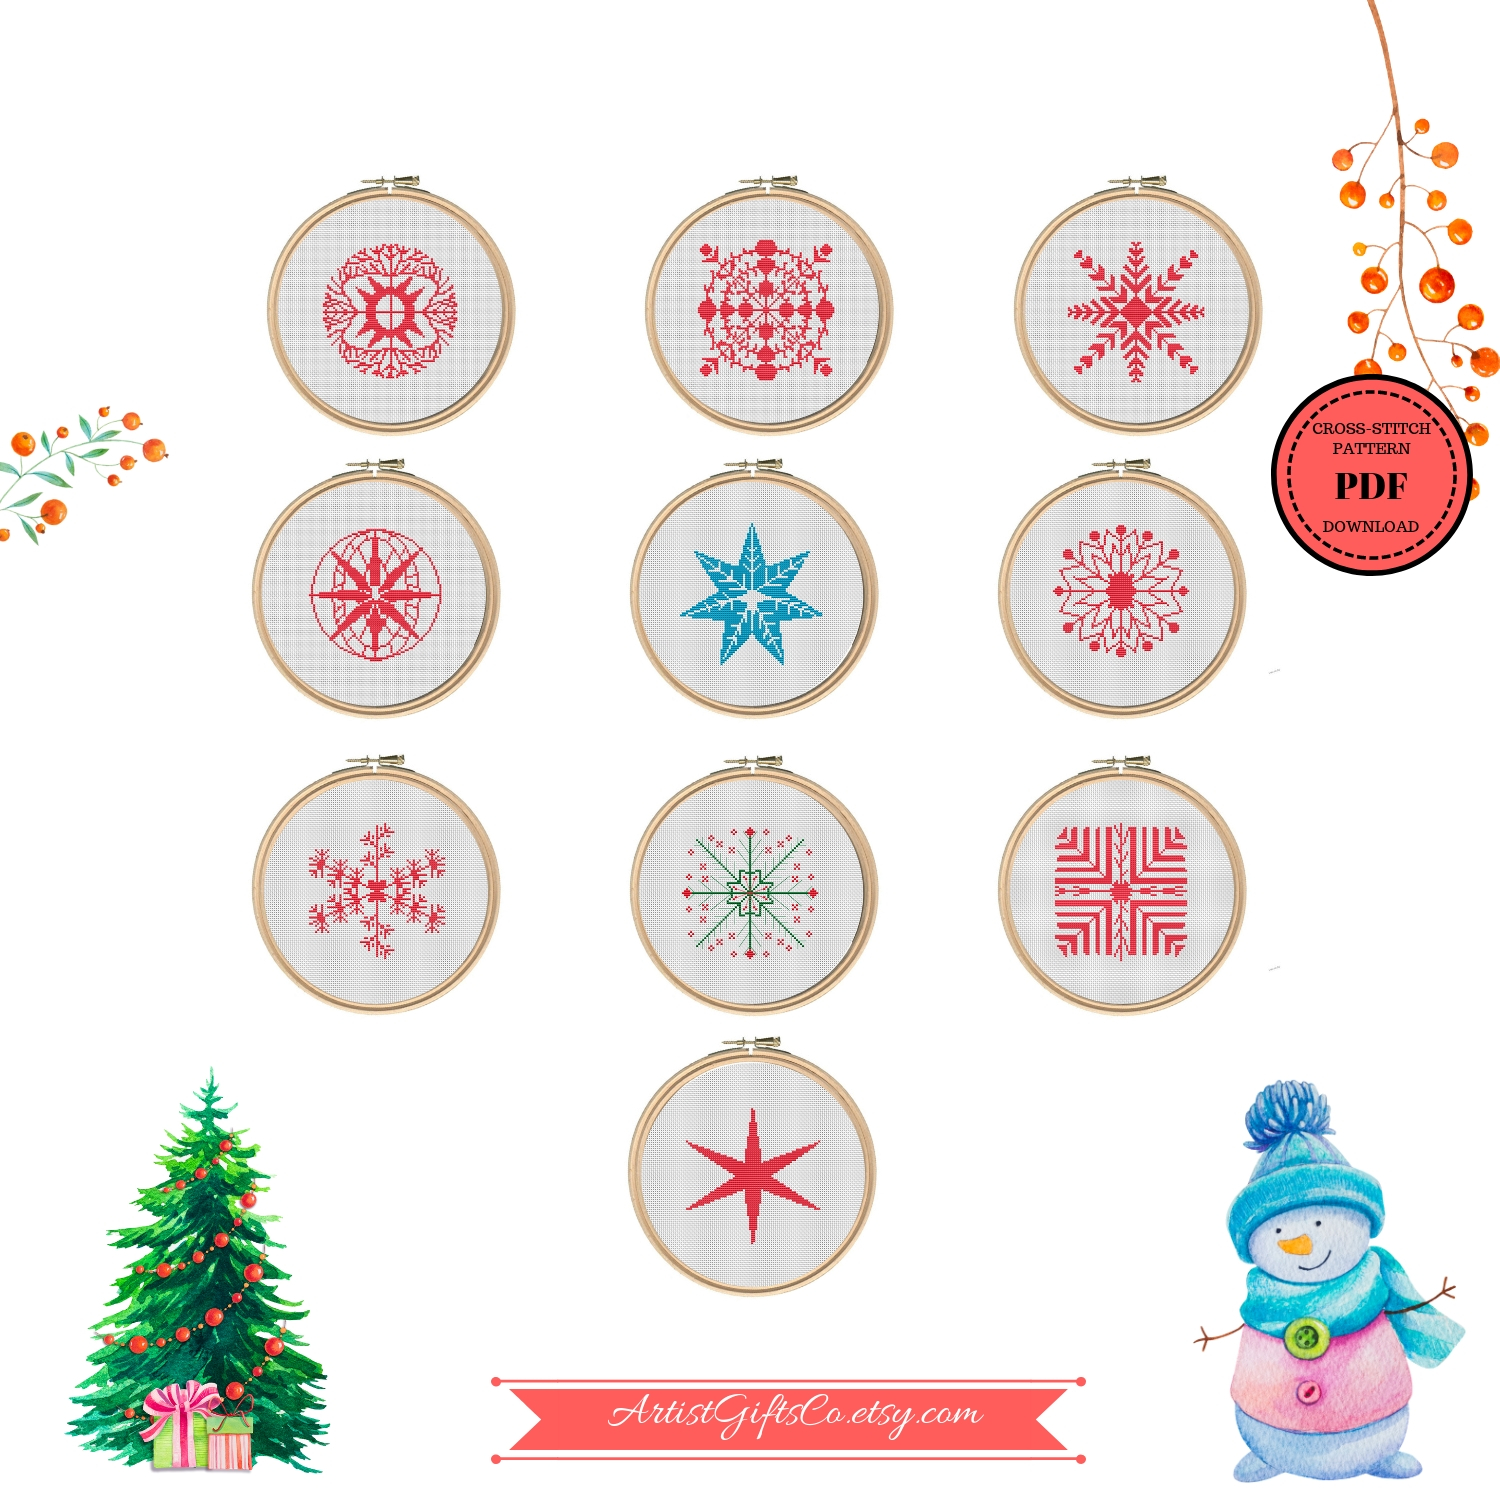 Christmas Series Snowflakes, Counted Cross Stitch Pattern example image 2